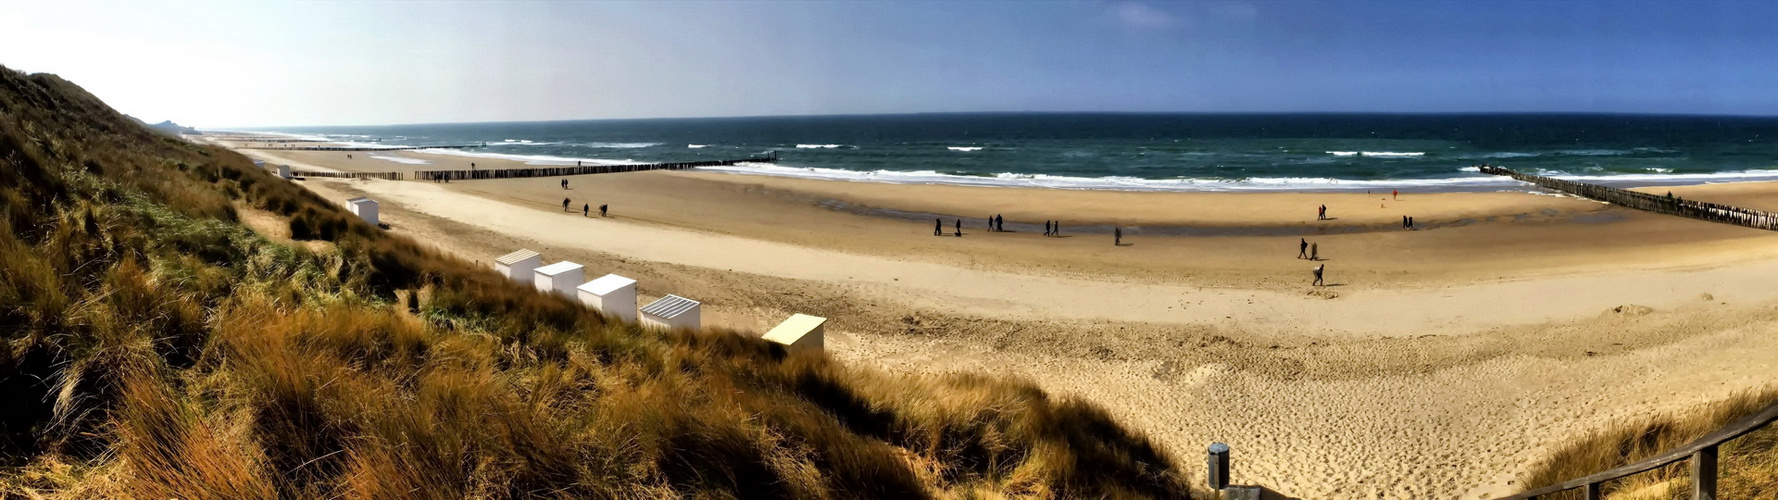 Strand Domburg Holland   - Panorama -